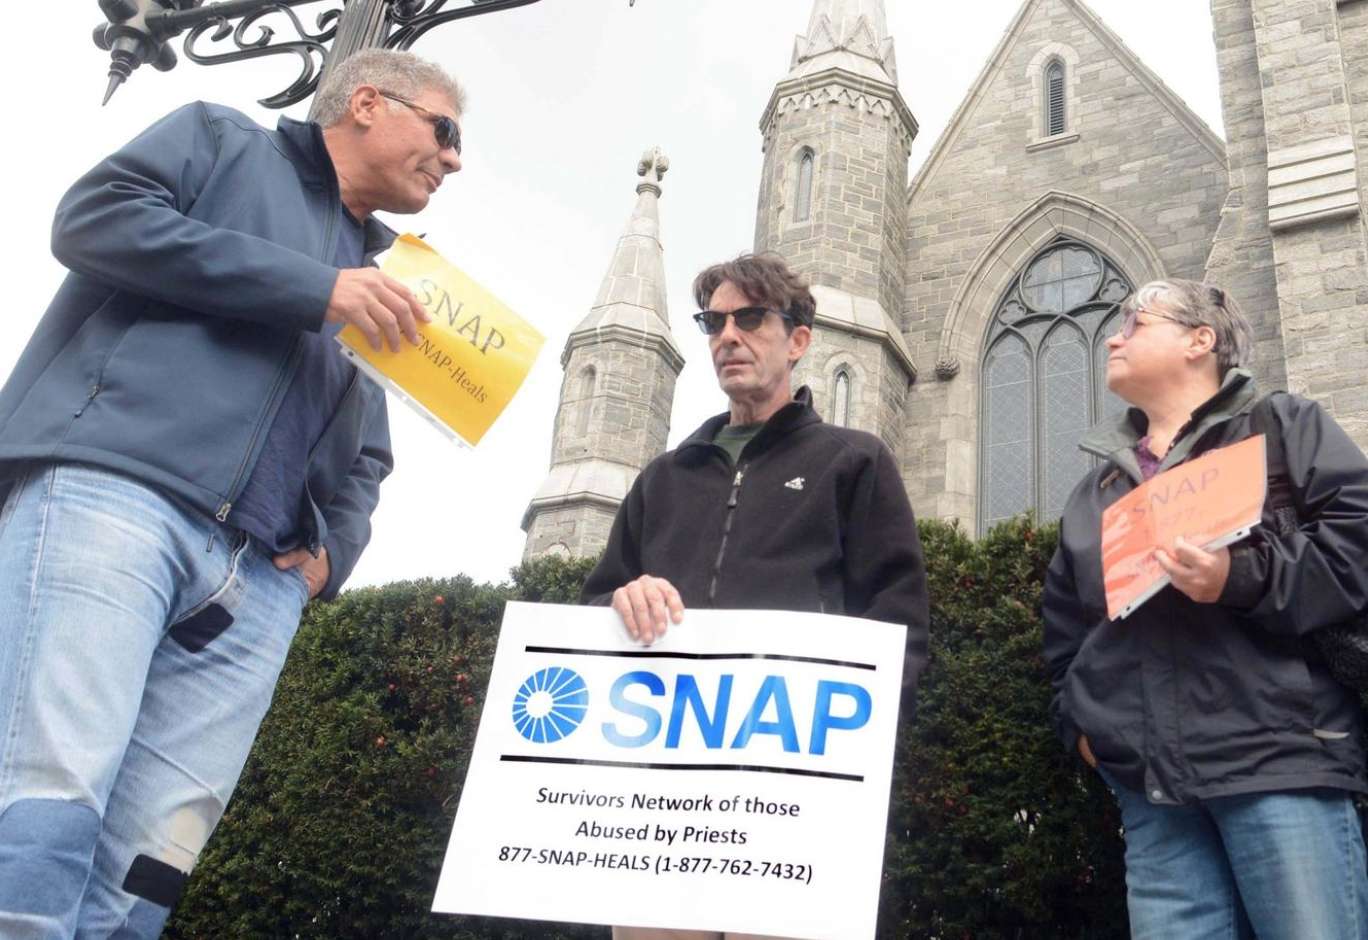 - Rally outside Norwich church calls for greater transparency for sexual abuseKevin Aherne | November 3, 2018A group of activists held a rally outside Norwich's St. Patrick Cathedral Saturday, calling on the diocese for more transparency regarding sexual assault allegations involving clergy, and to compel state legislators to remove the statute of limitations on reporting sexual abuse.